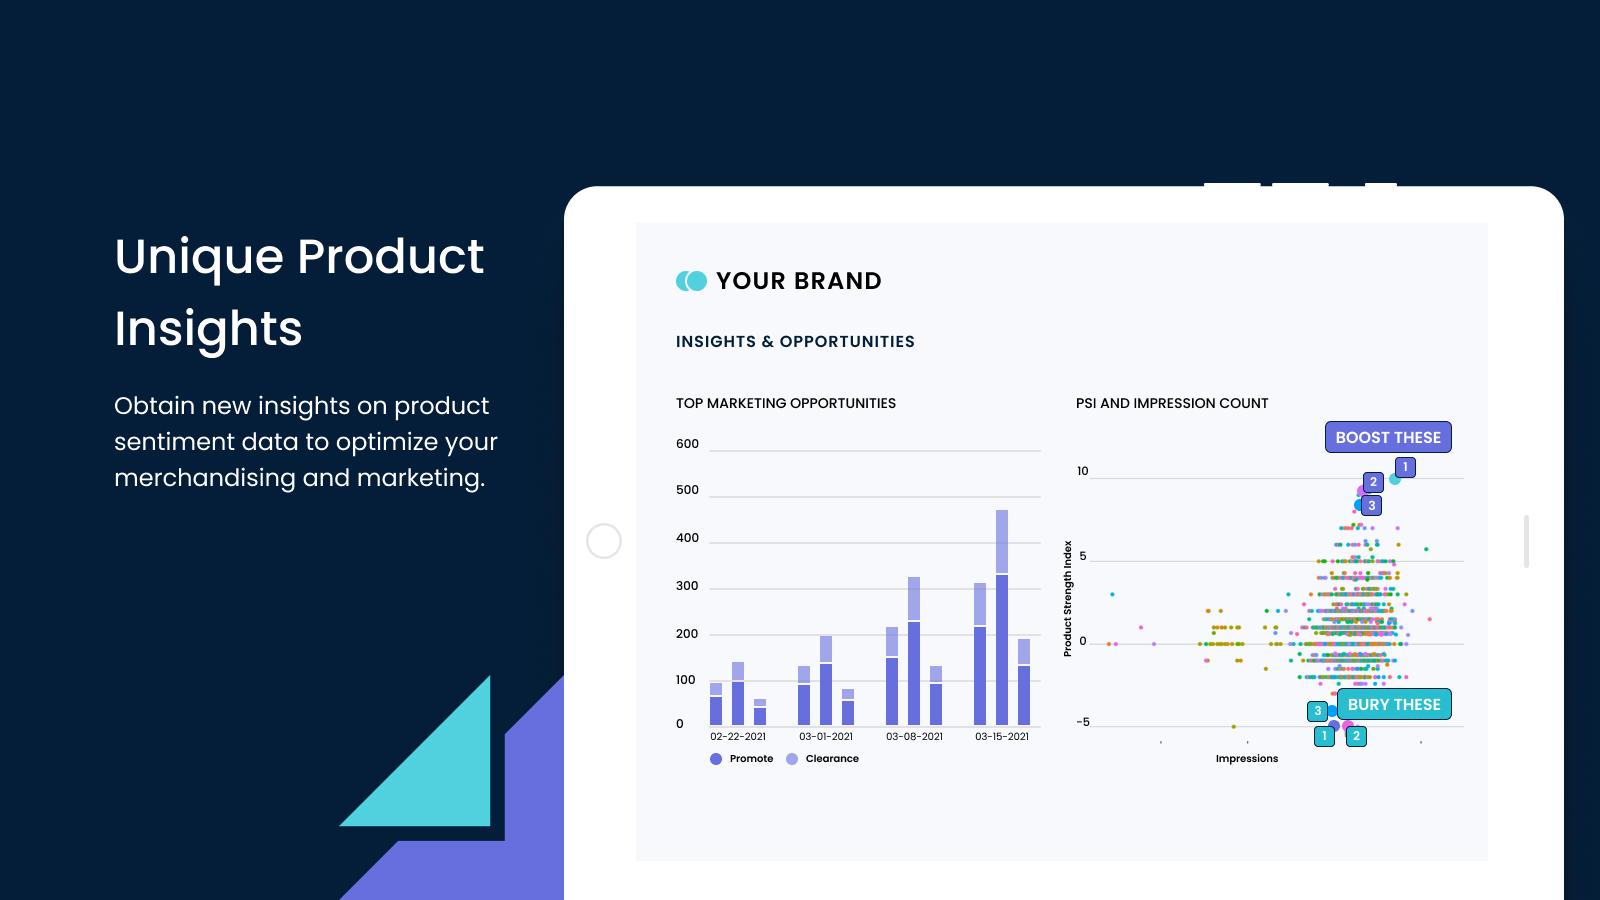 Unique Product Insights and product sentiment data